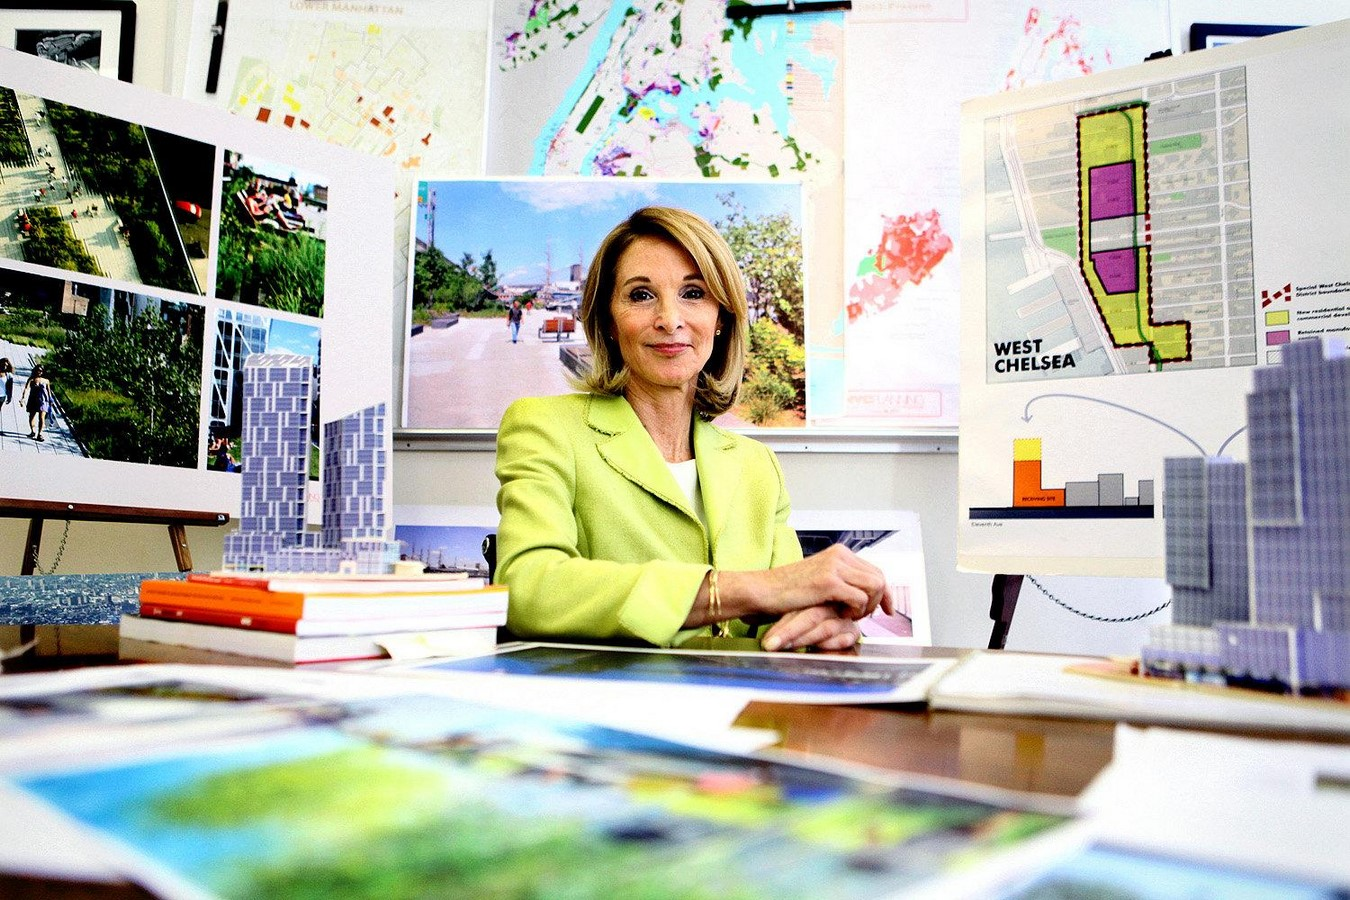 Tedtalk for Architects: Amanda Burden: How public spaces make cities work - Sheet